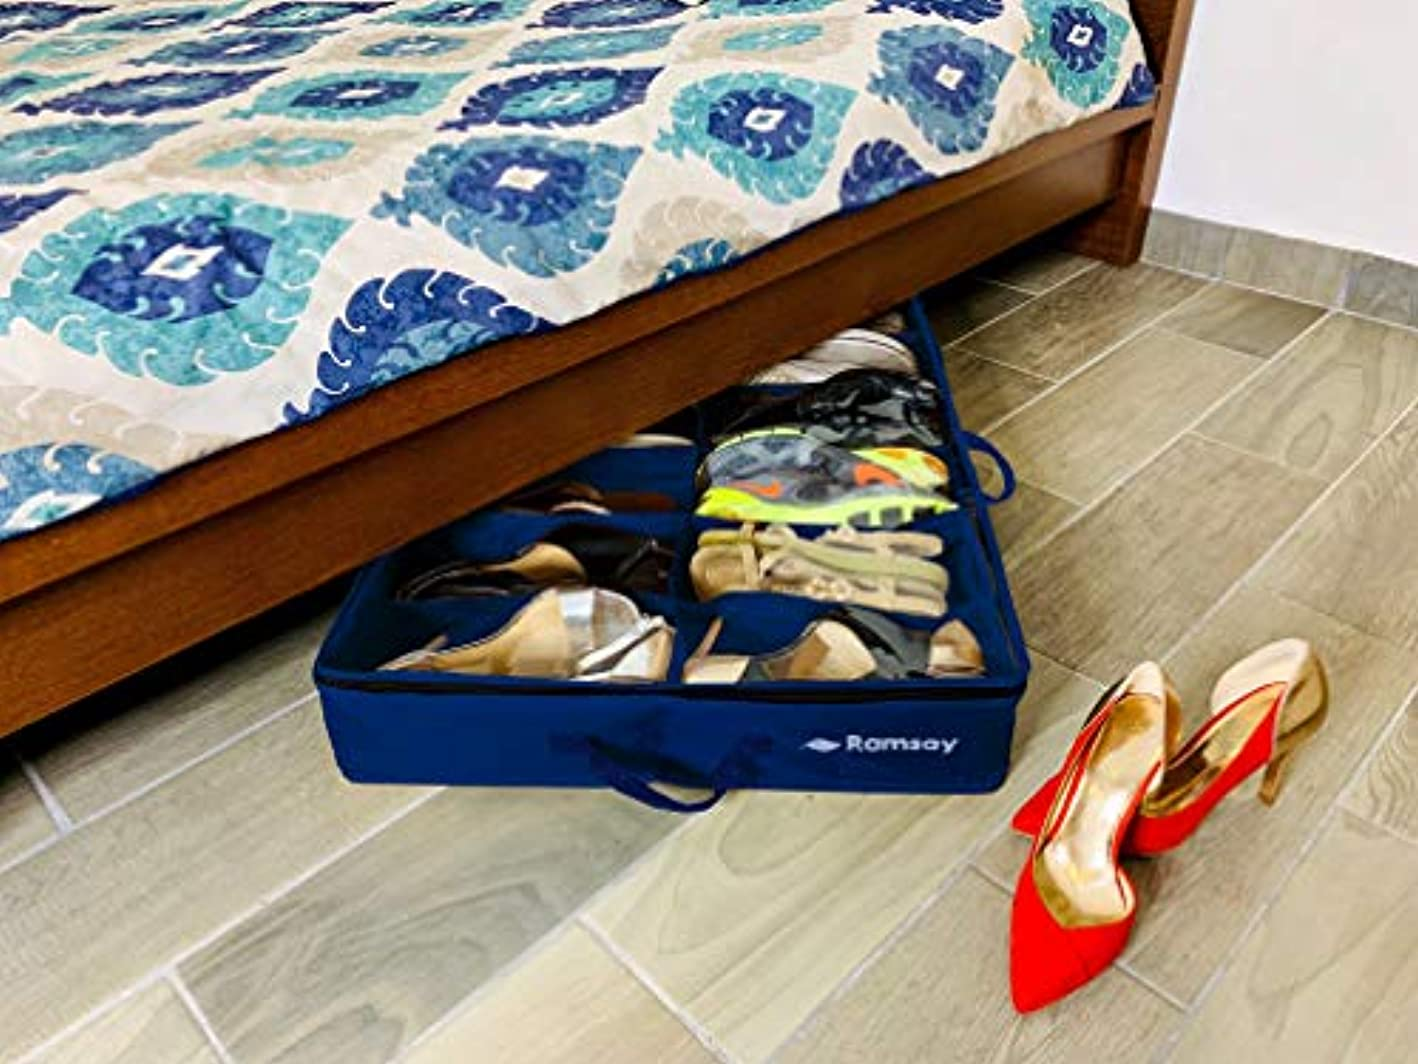 Ramsay Under Under Bed Shoe Storage Organizer Strong and Sturdy,Double, Dust Free Design, Space Saver, 12 Pair Front Zippered Closure, Blue puukkd0571341